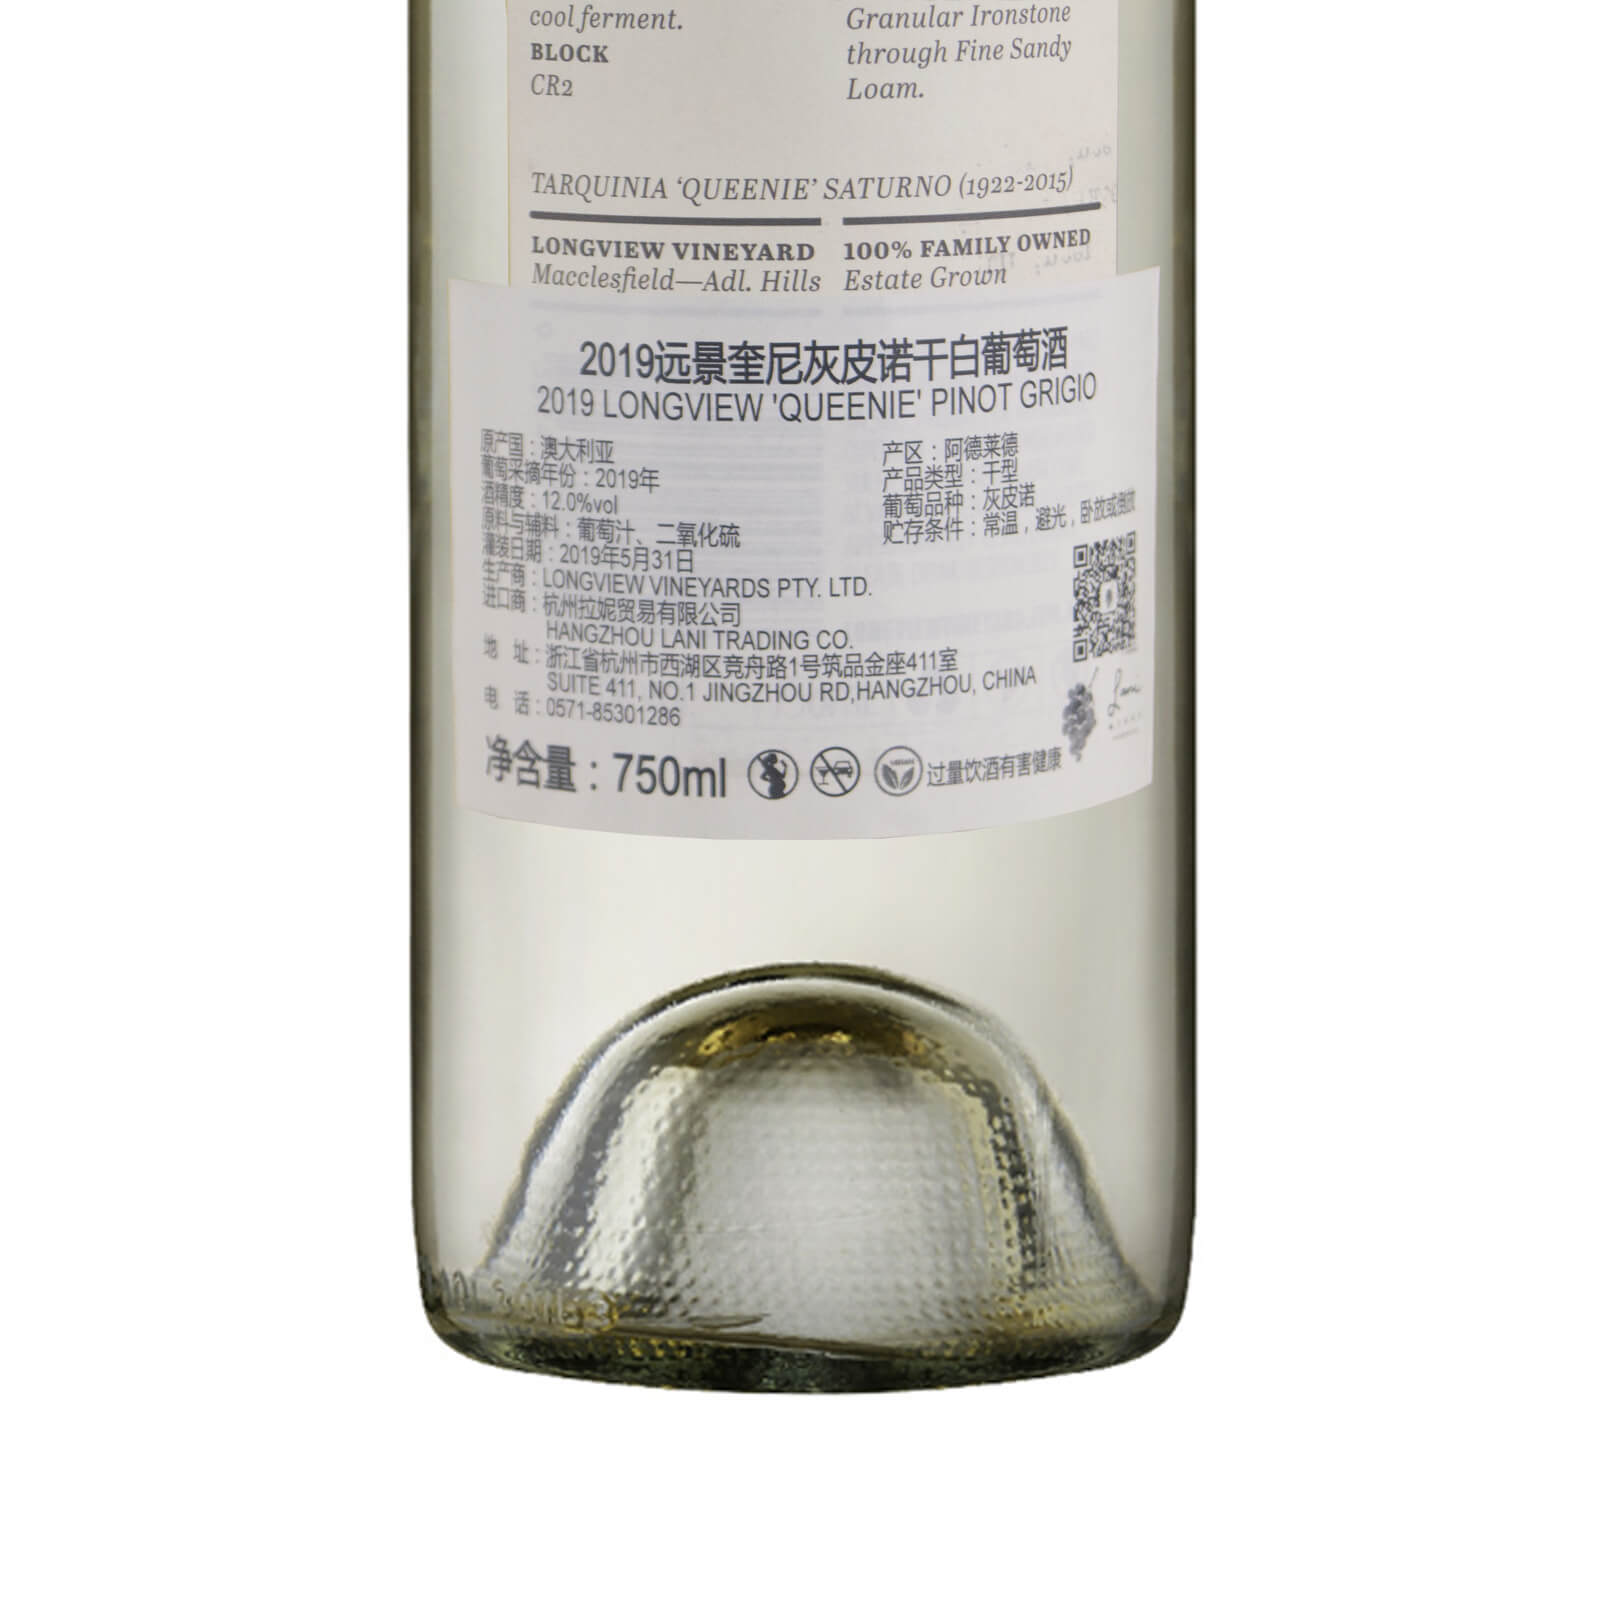 products-Longview-Queenie-Pinot-Grigio-c